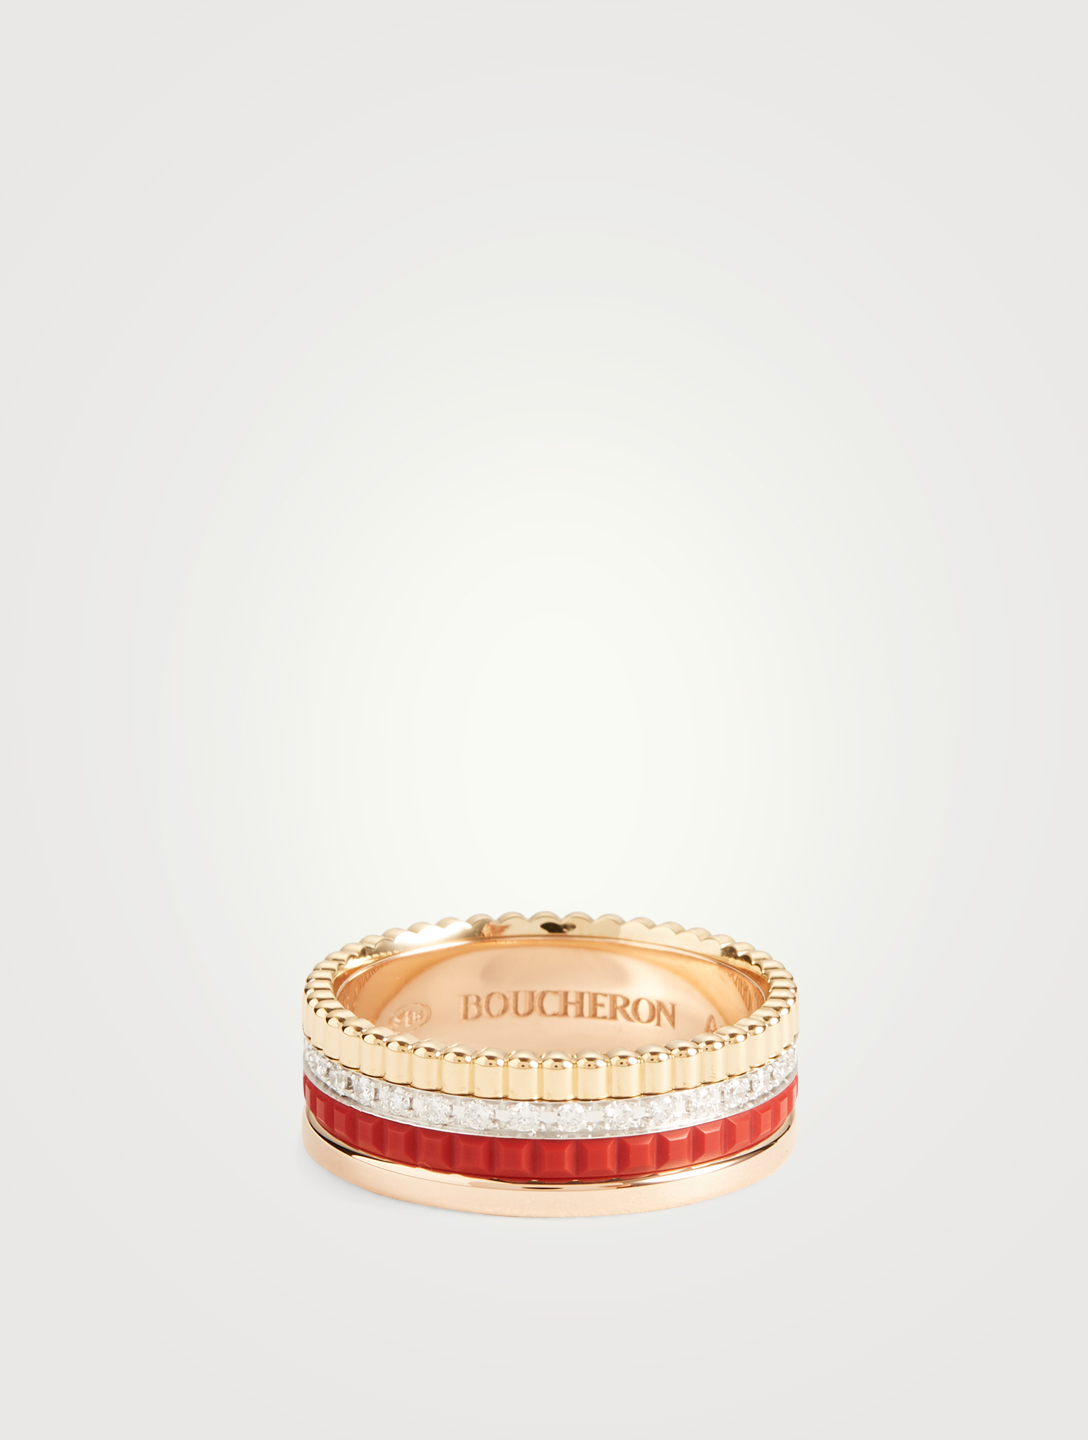 BOUCHERON Bague Quatre Red Edition à pavé de diamants Femmes Or